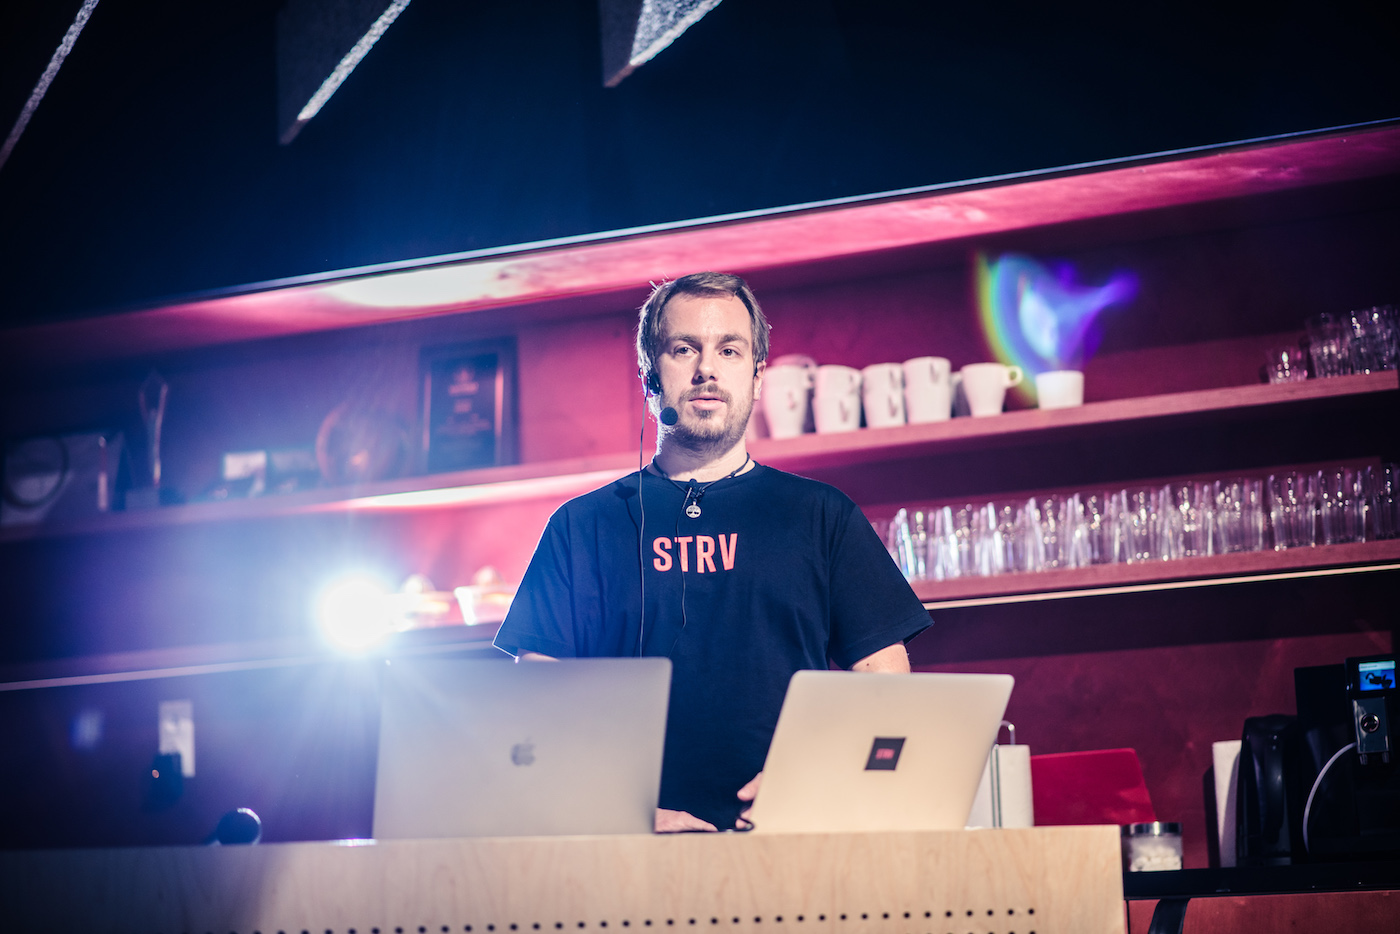 strv backend developer meetup 2017 - robert rossmann speaking on the stage